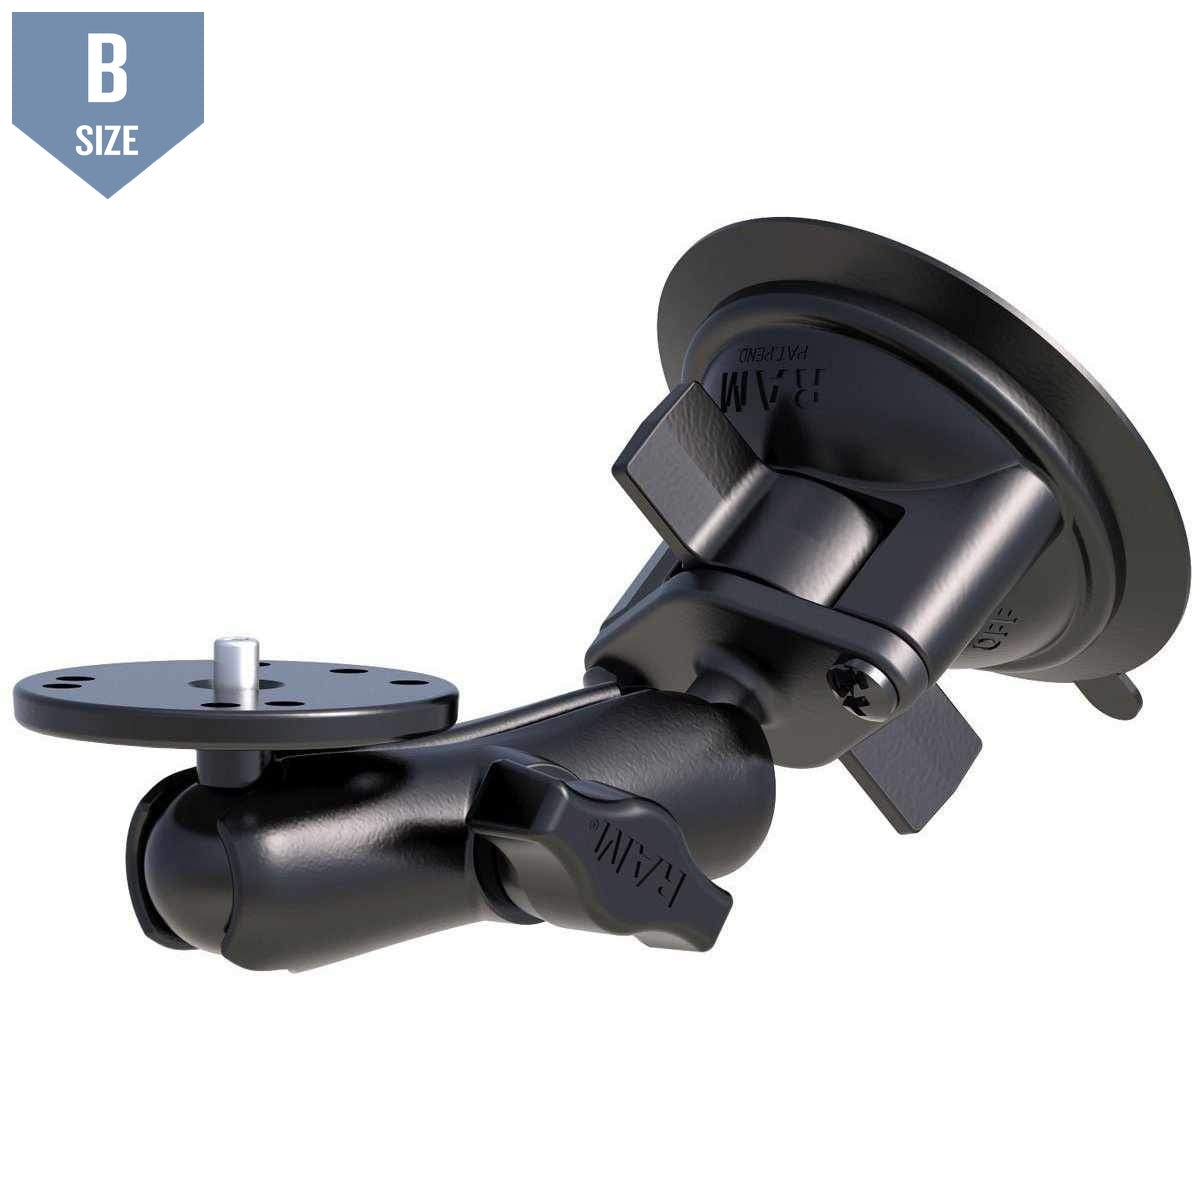 RAM Camera Plate Suction Cup Mount (RAM-B-166-202AU) - Modest Mounts